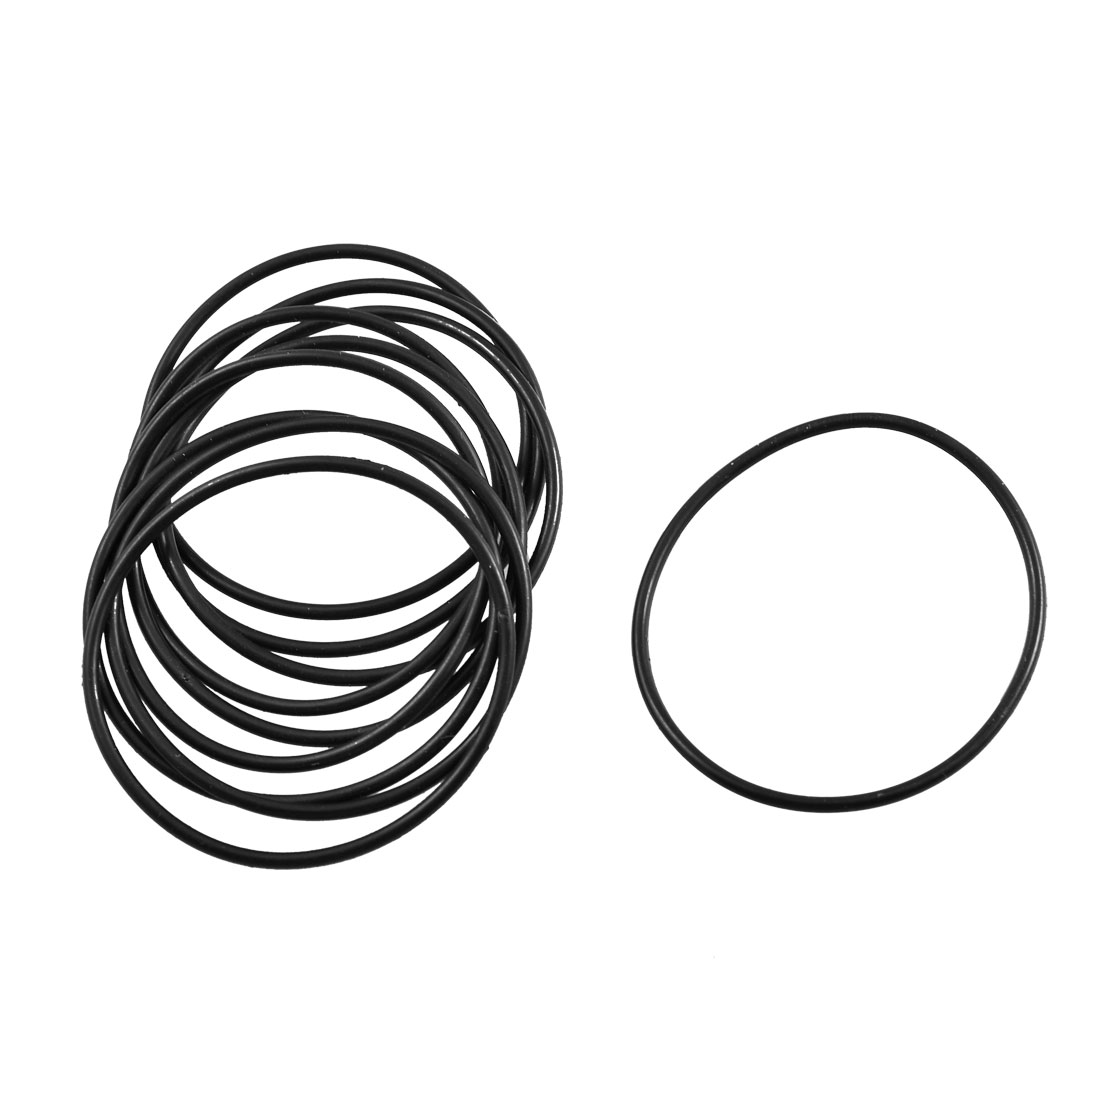 10 Pcs Black Rubber Flexible Oil Sealing O Ring Gasket 41.2mm x 1.8mm